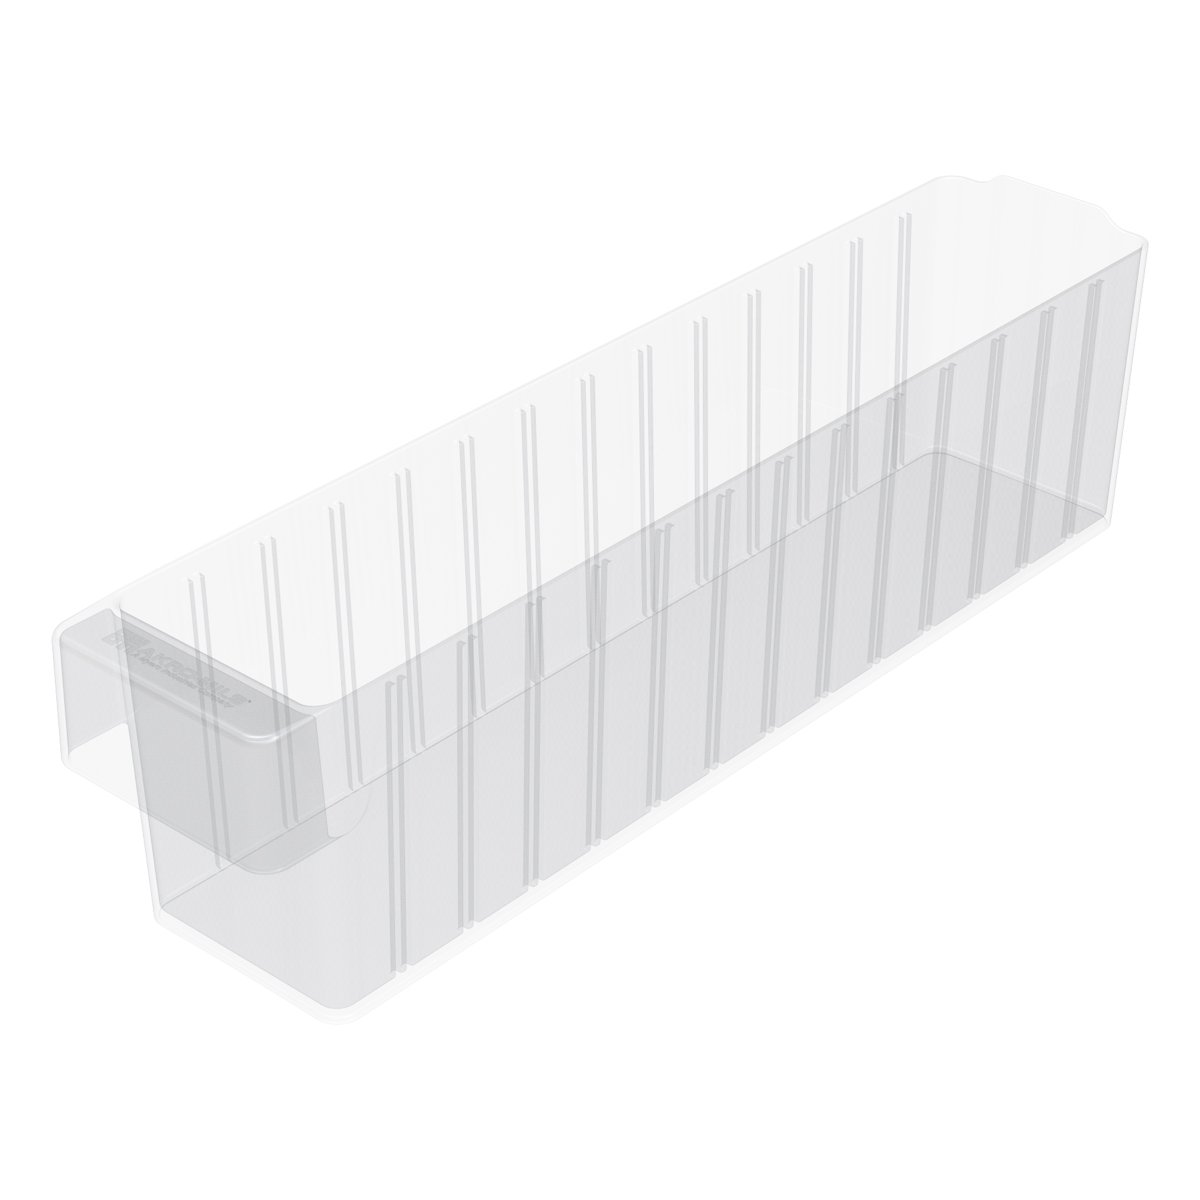 Akro-Mils 31148 17-5/8-Inch L by 3-3/4-Inch W by 4-5/8-Inch H AkroDrawer Plastic Storage Drawer, Crystal Clear, Case of 6